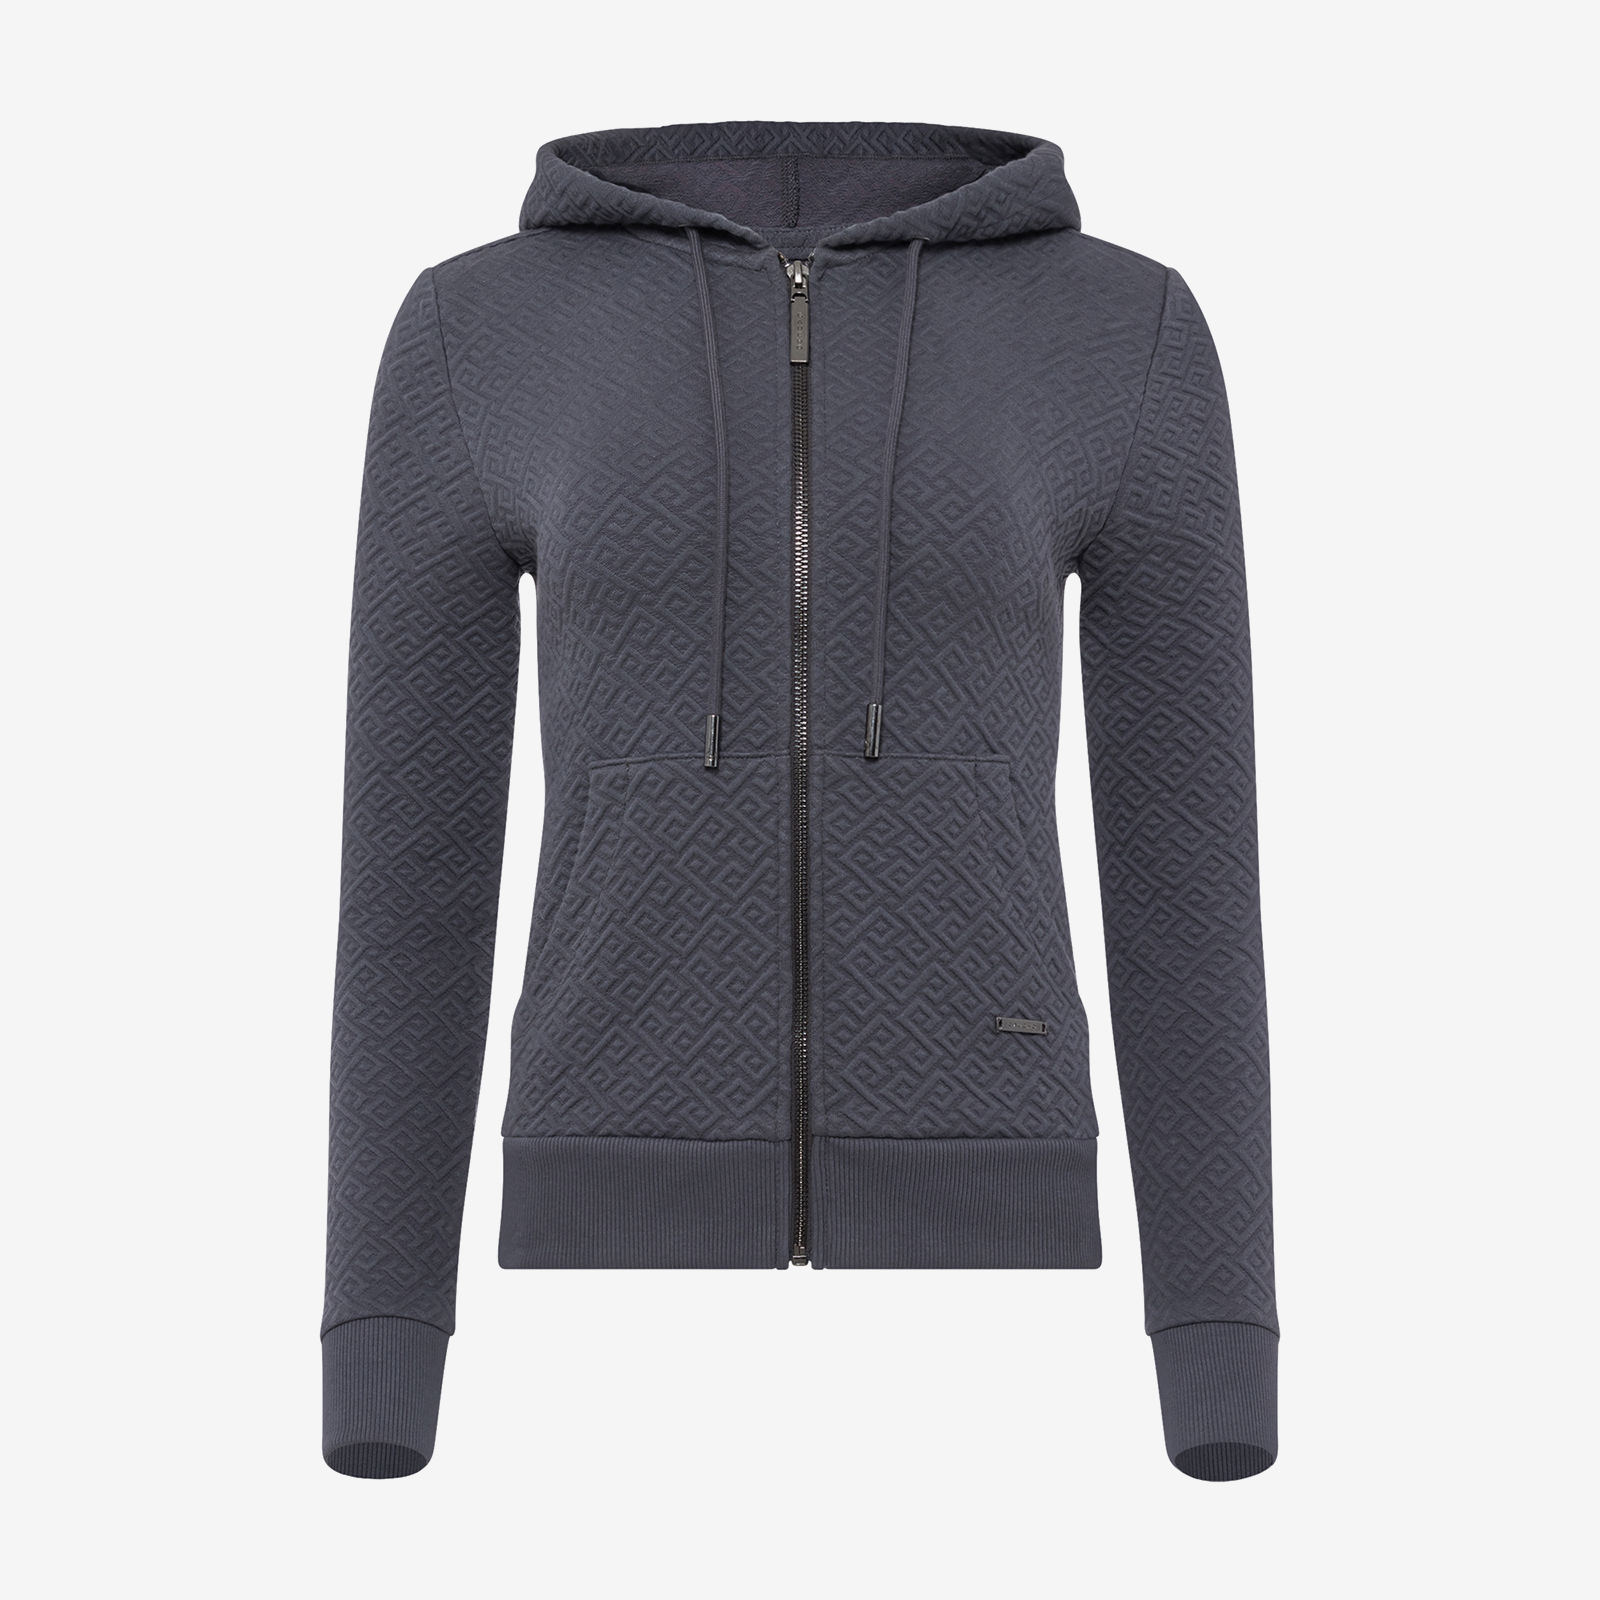 Sports jacket product picture